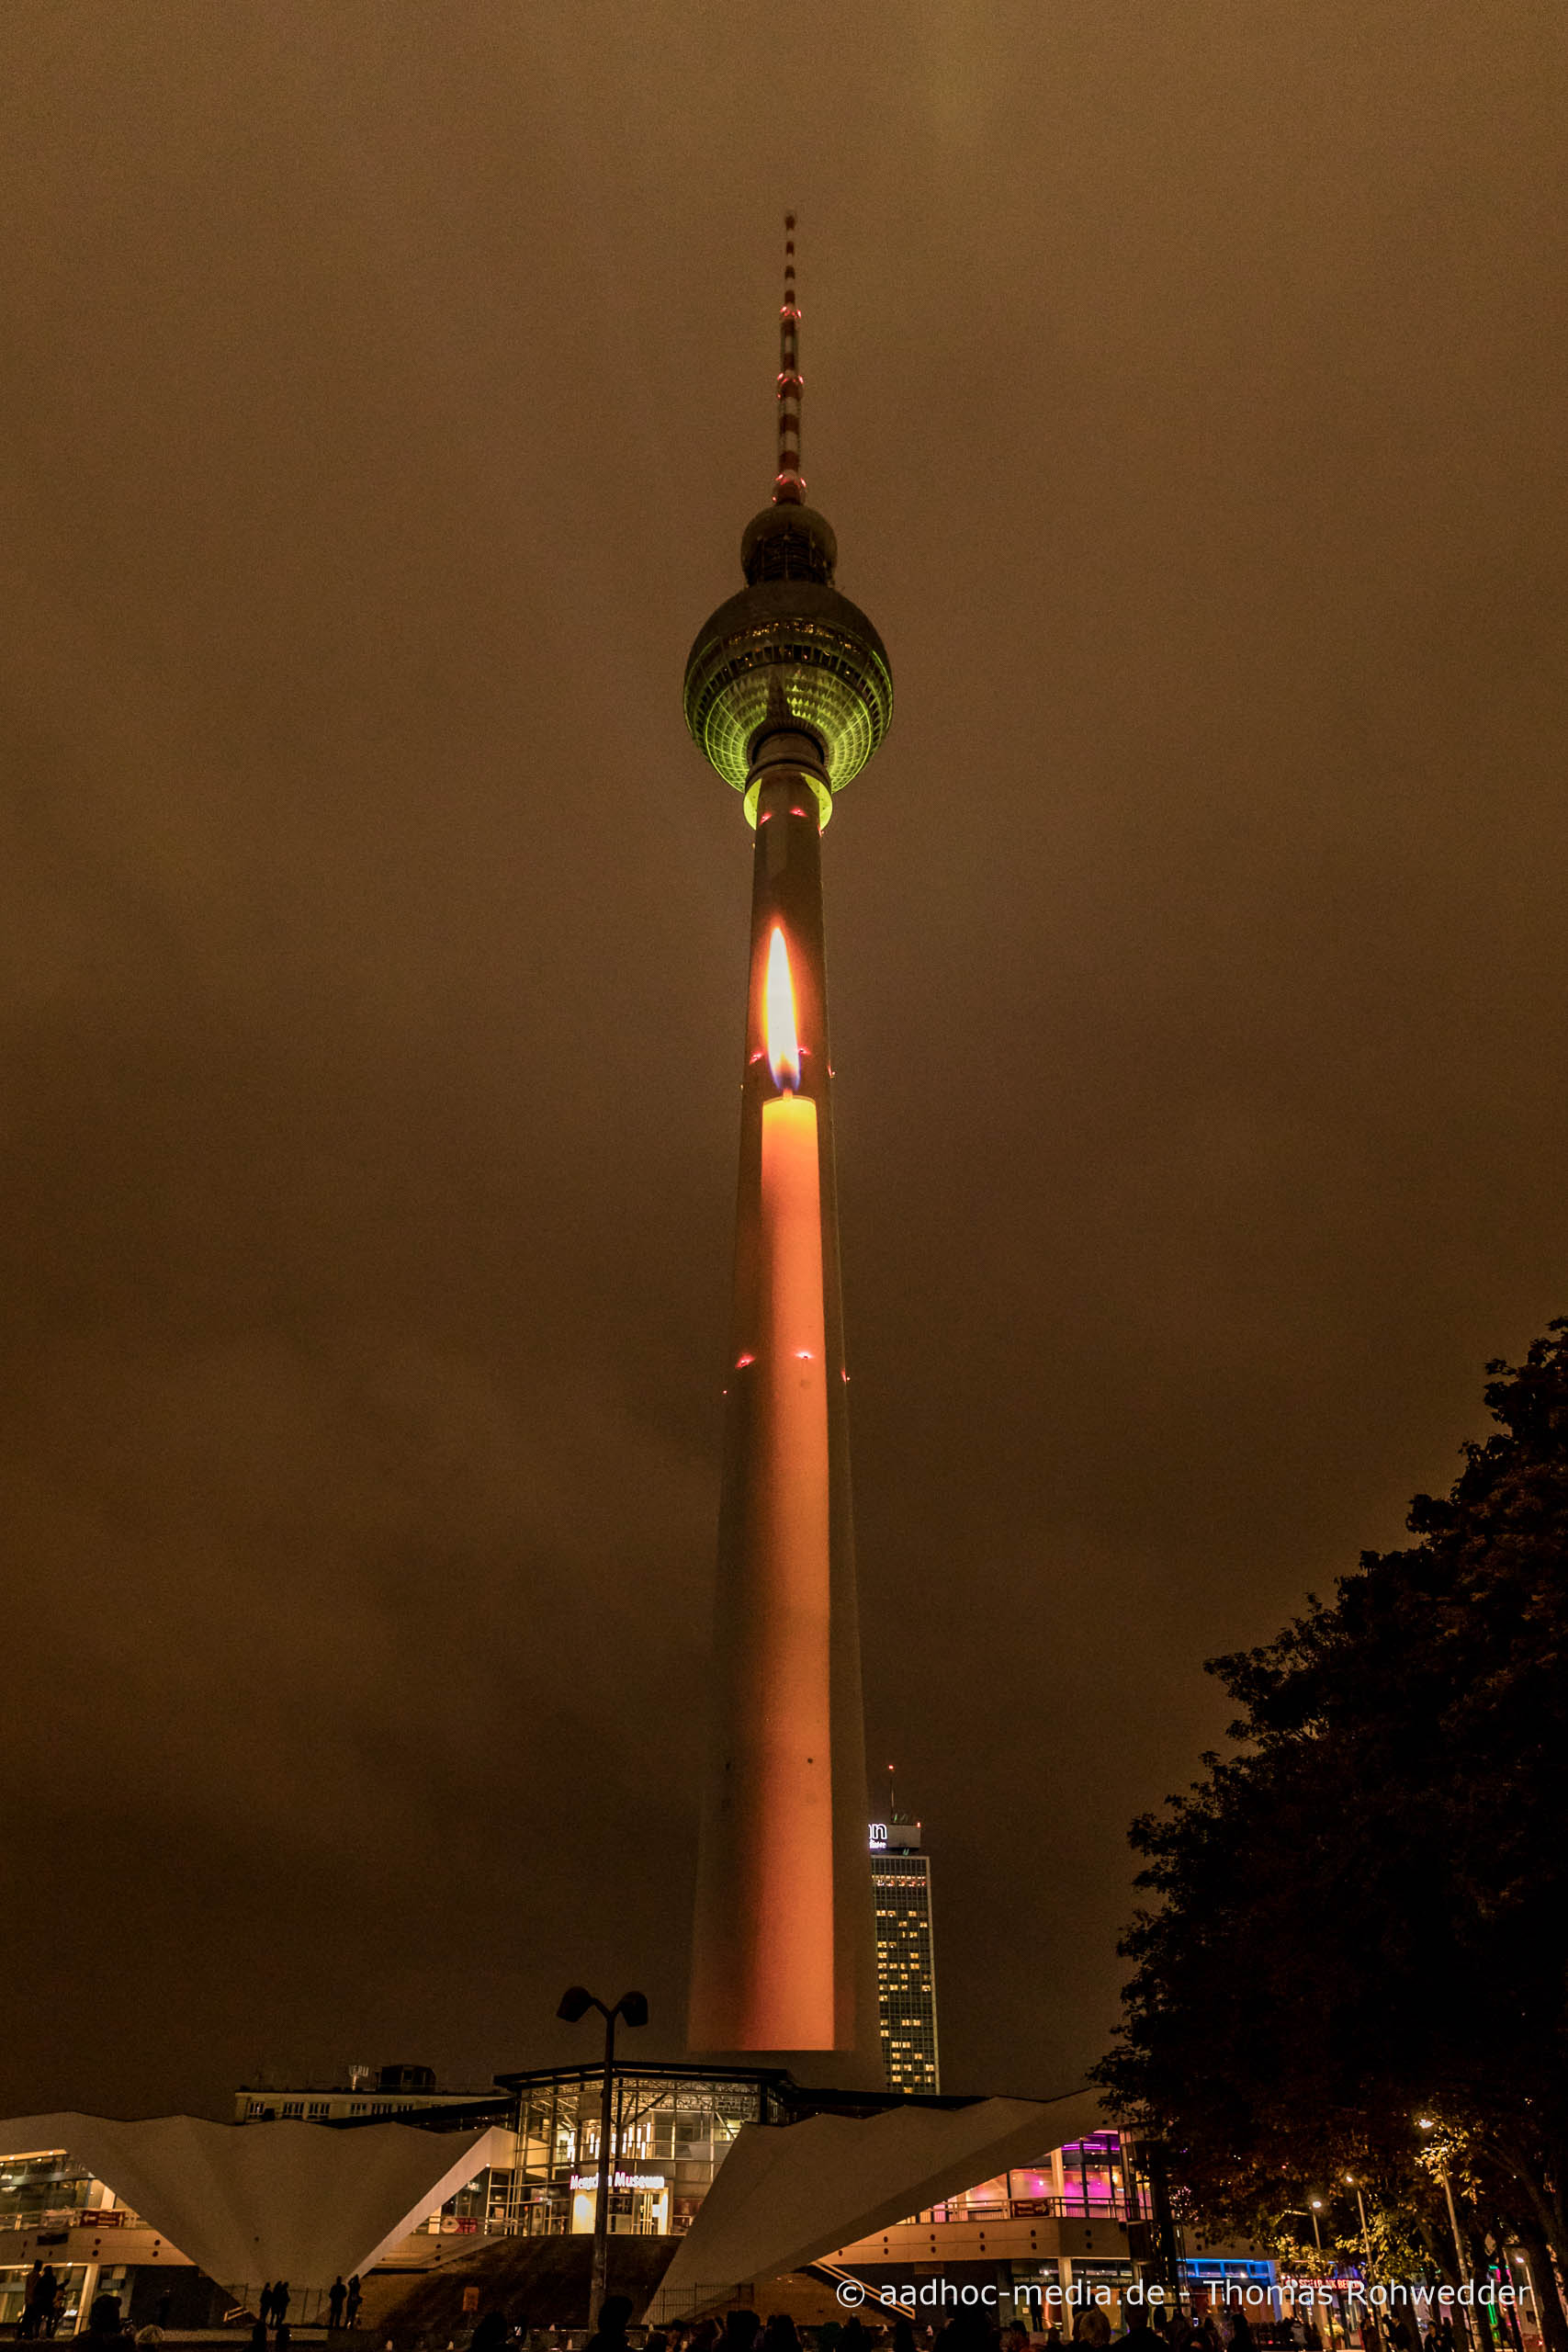 Fernsehturm am Alexanderplatz zum Festival of Lights in Berlin • Bild aus dem Canon 5D Mark IV Test • ©Foto aadhoc-media.de • Thomas Rohwedder